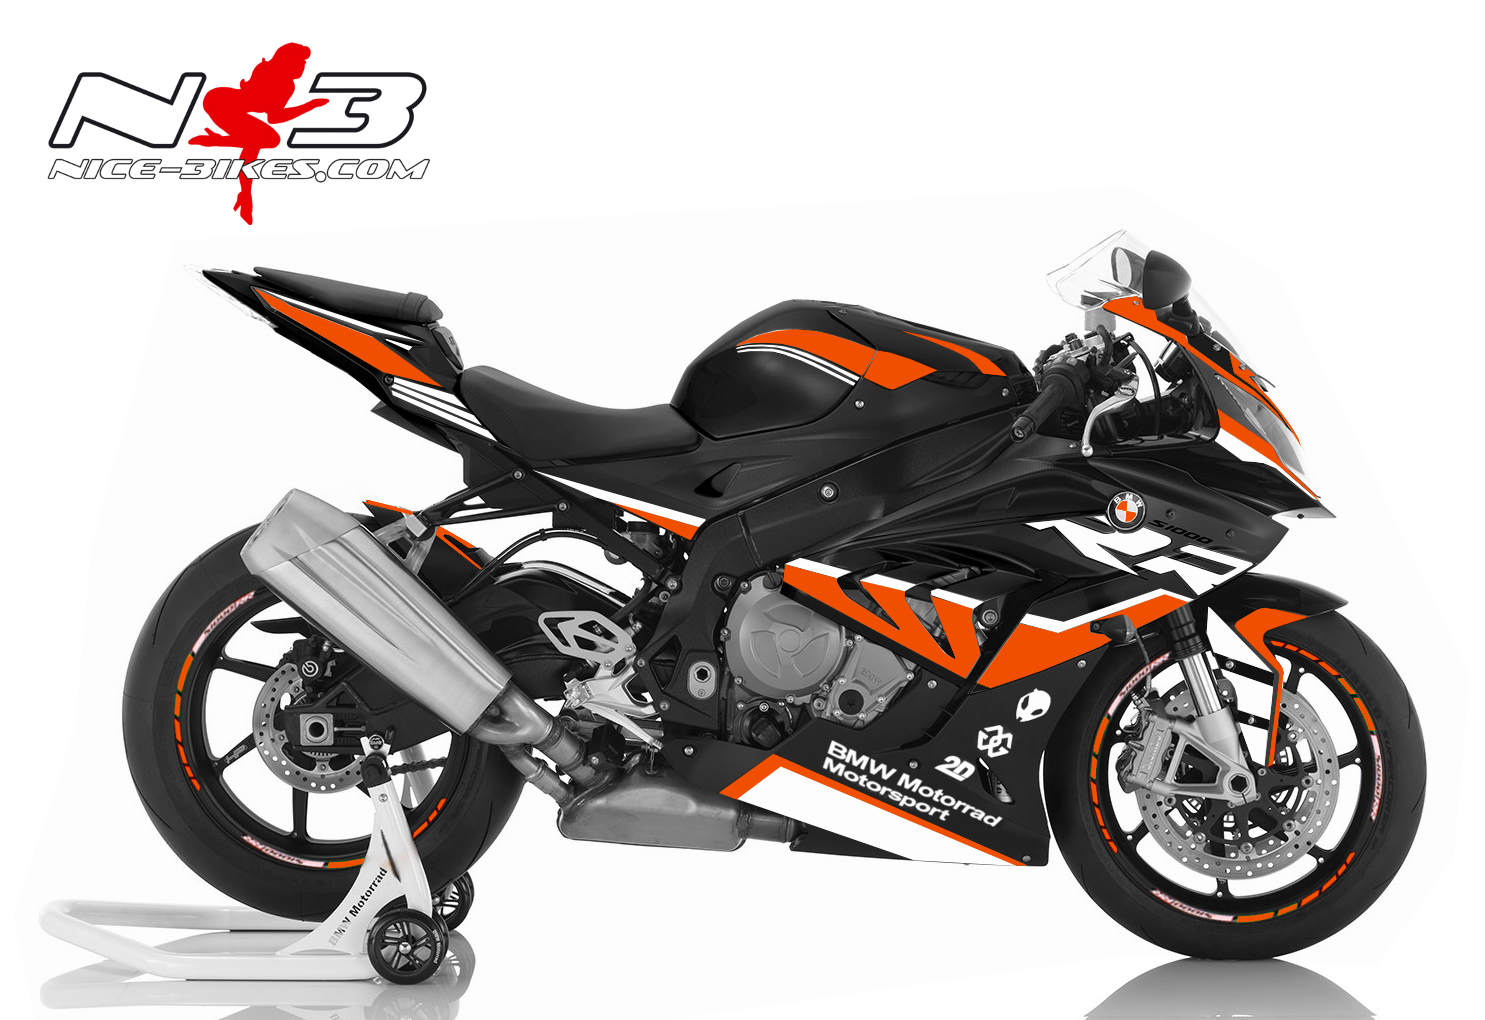 Dekorsatz S1000RR EDITION orange für schwarze Maschine 2018